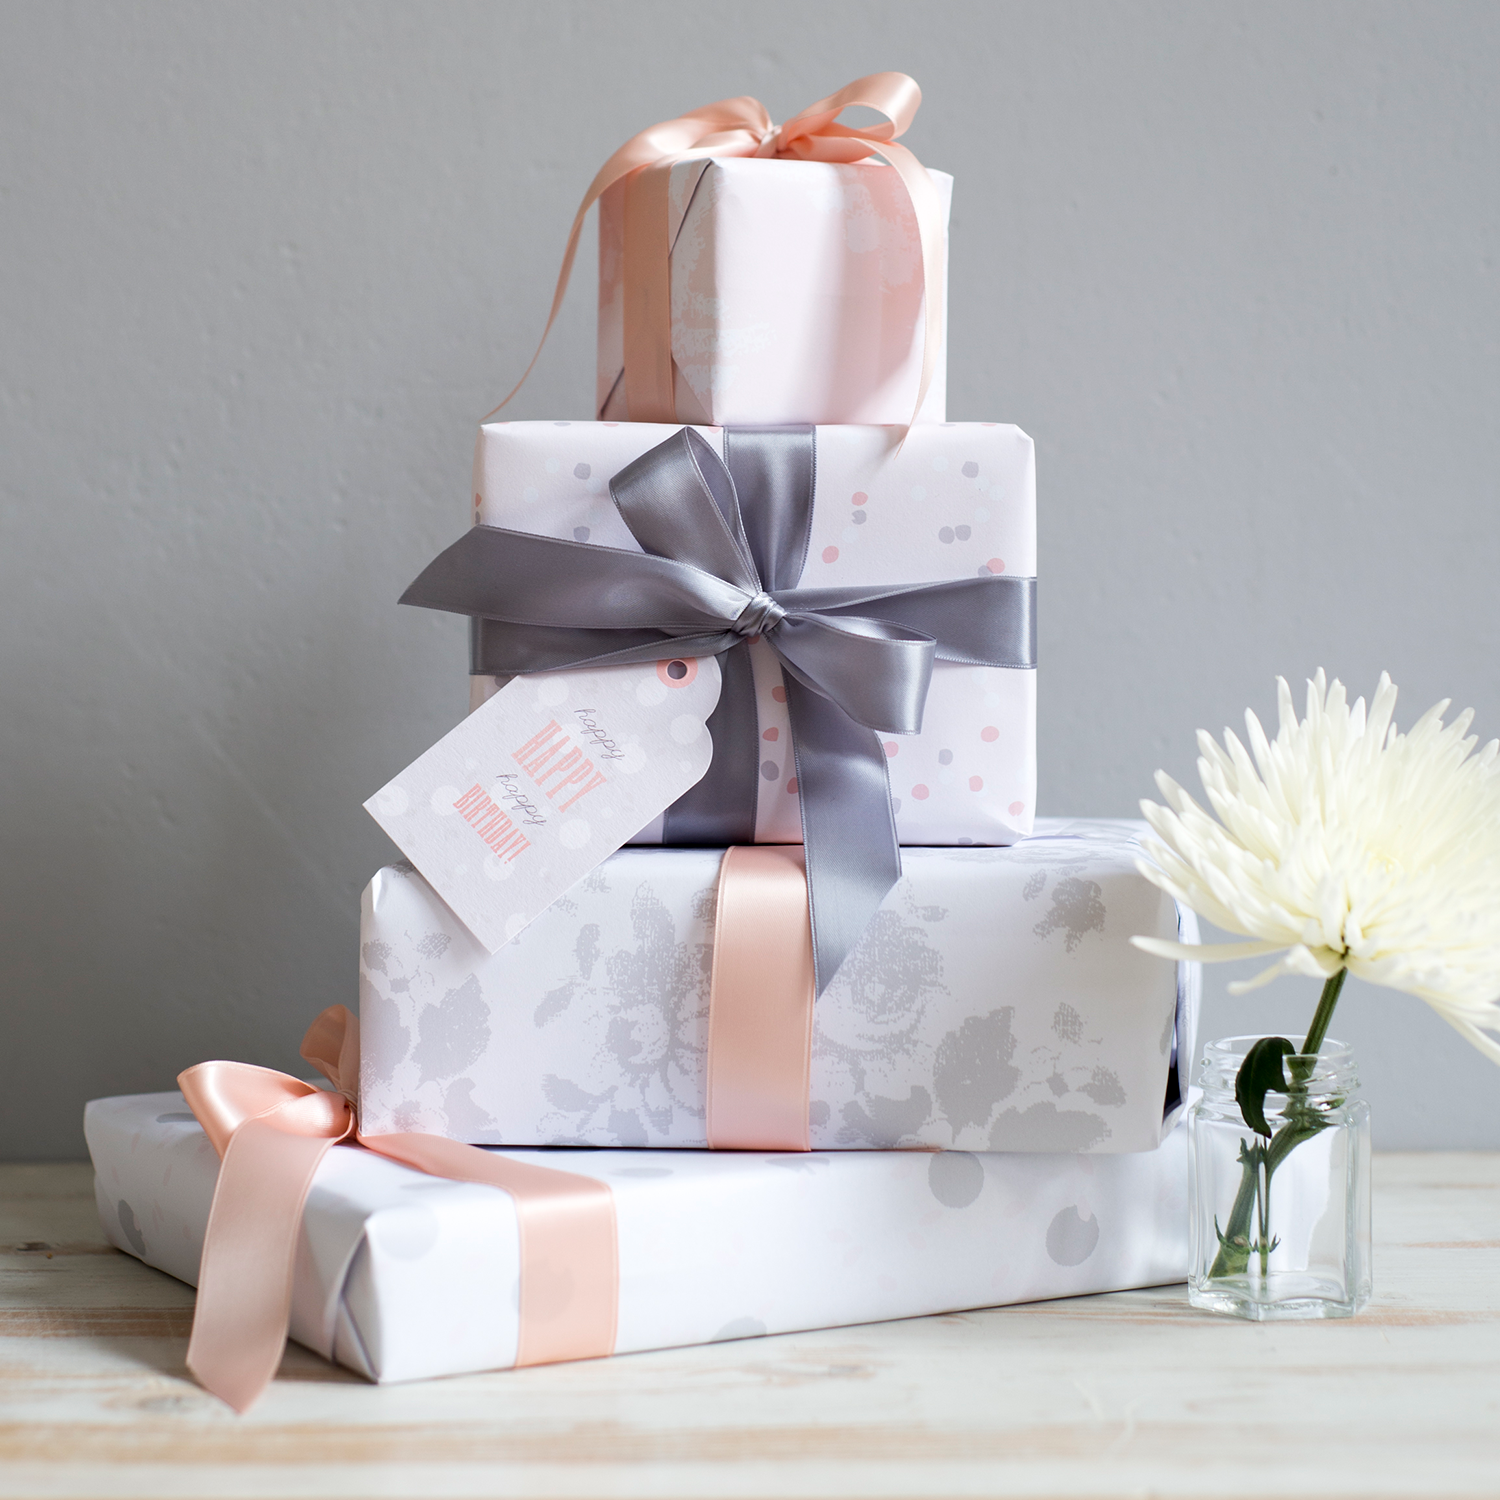 Image by Holly Booth Photography of Studio Seed Gift Wrap